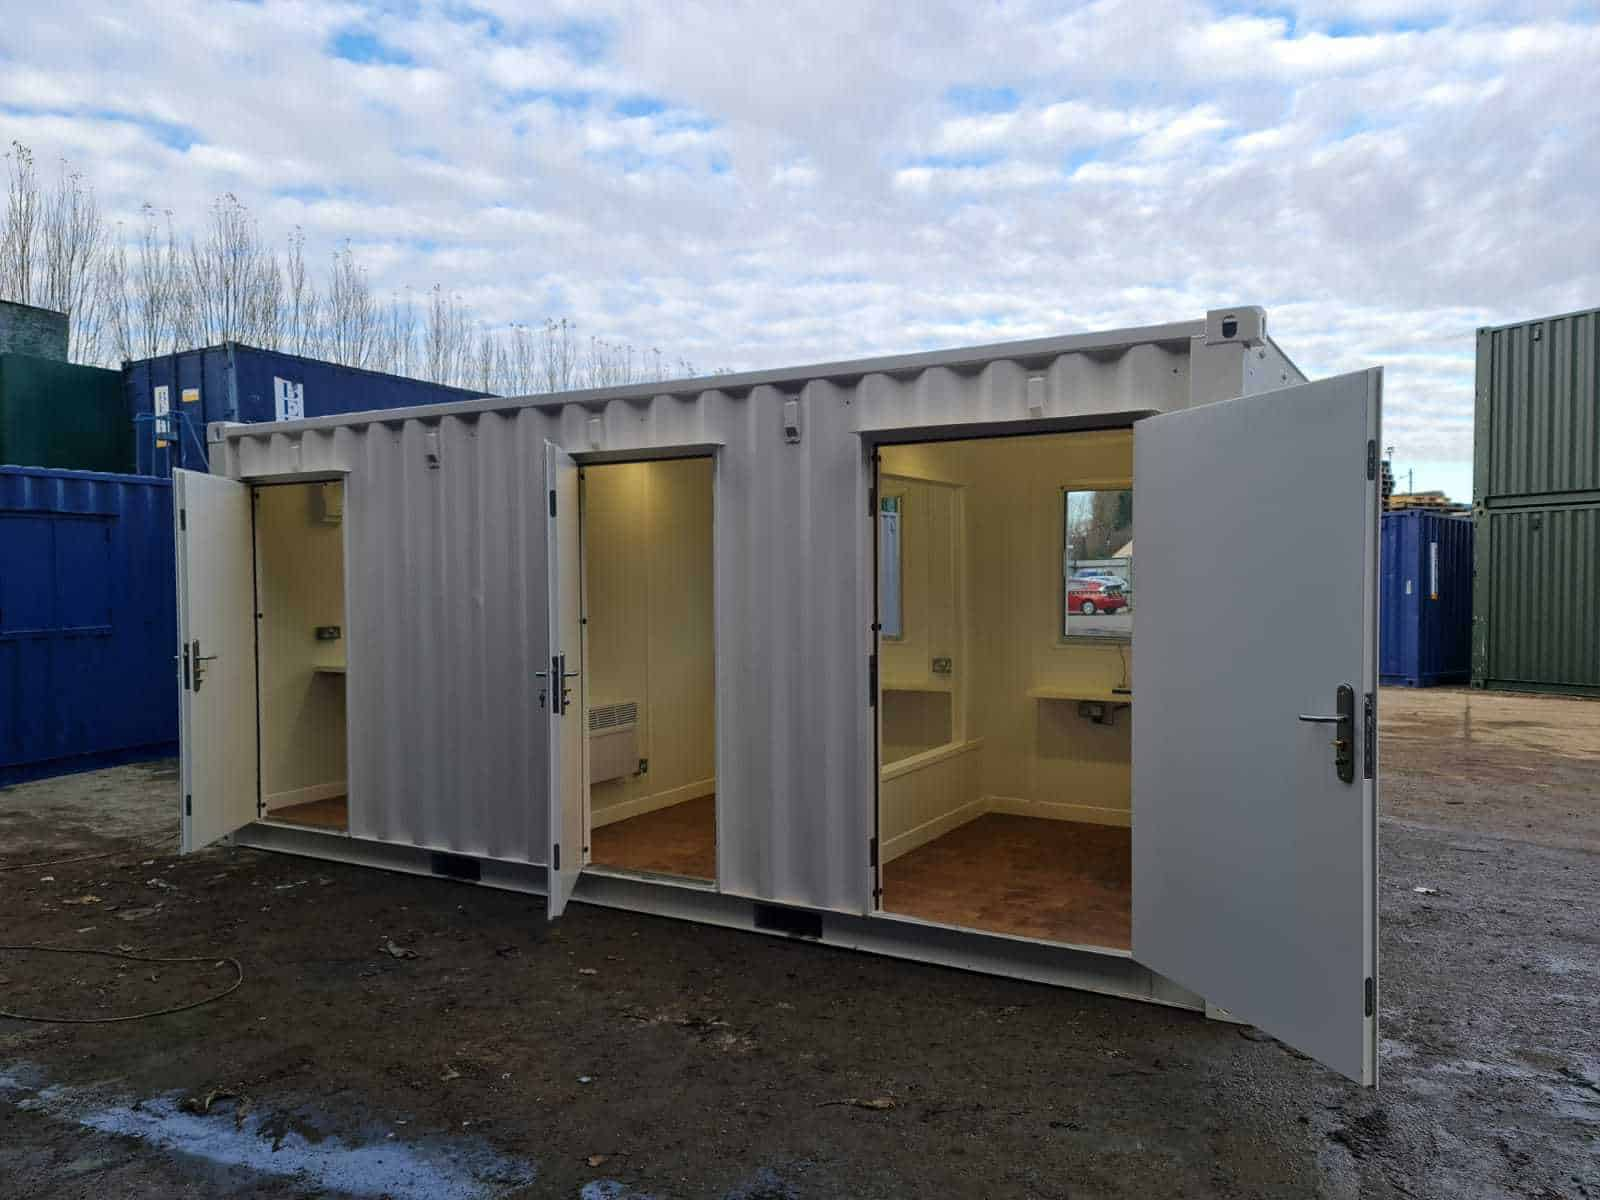 20 x 8 container care pod exterior for social distancing 1